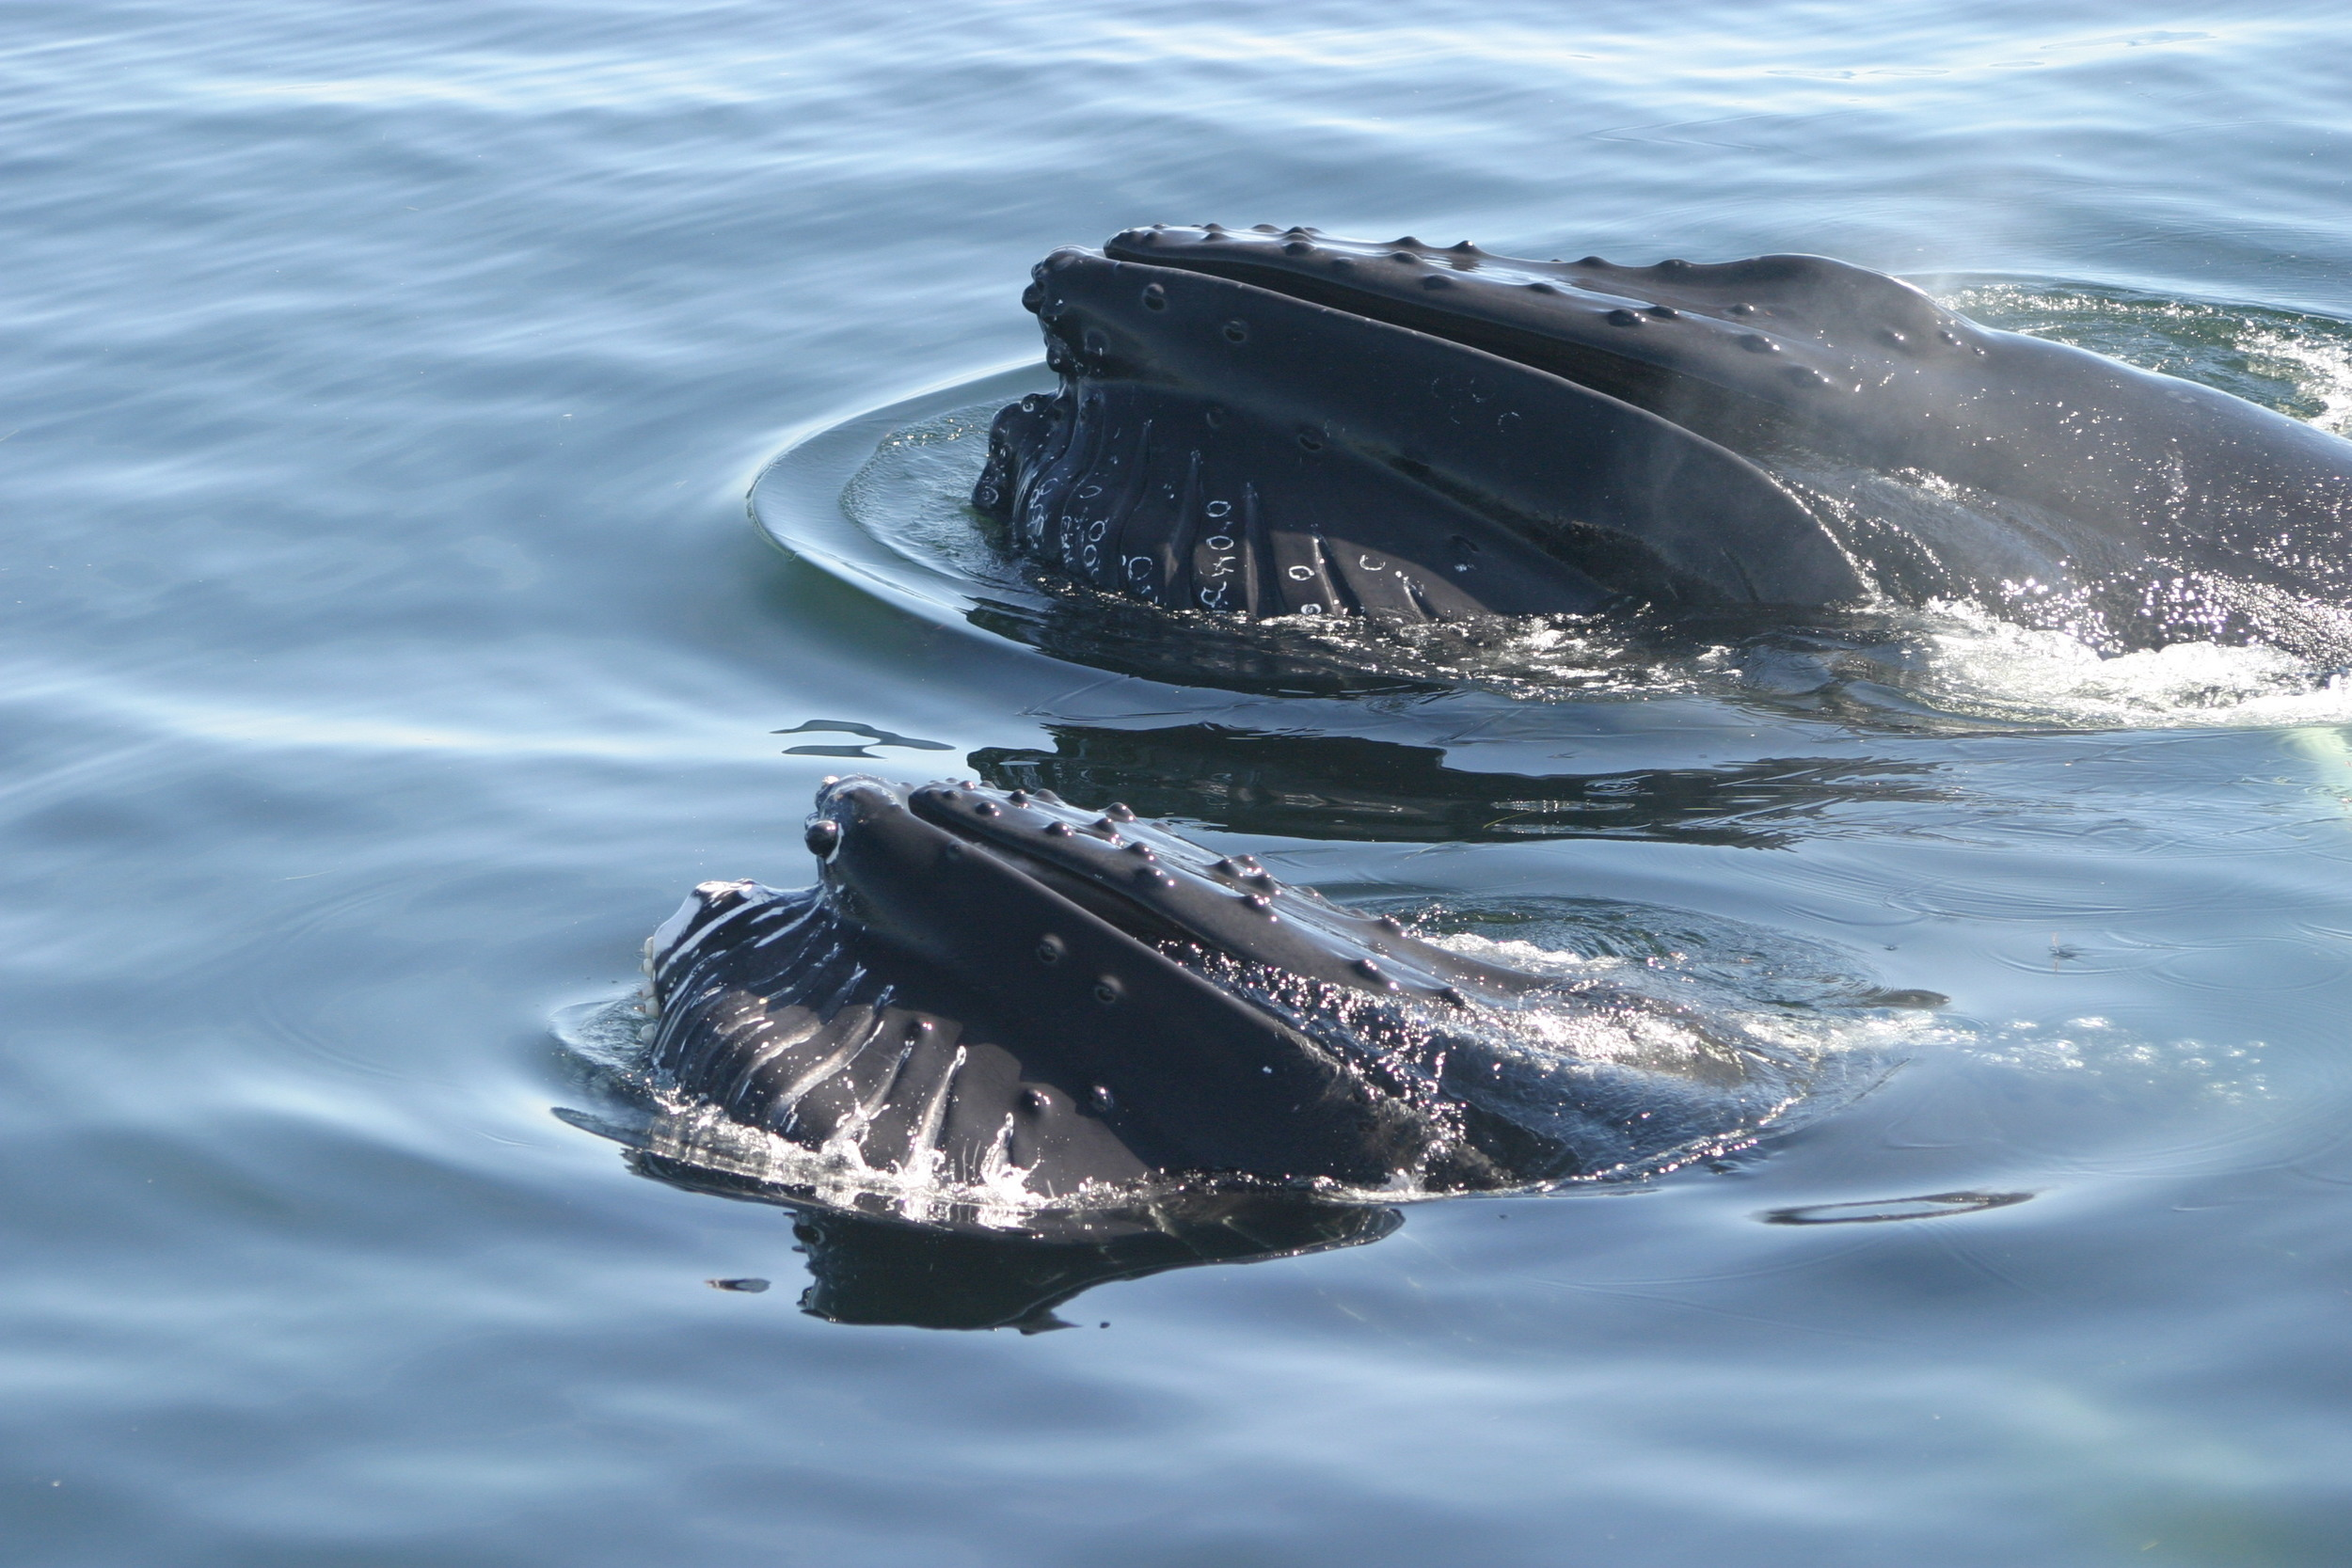 Humpbacks often forage in pairs in the Salish Sea (Photo By Andrea Hardaker)